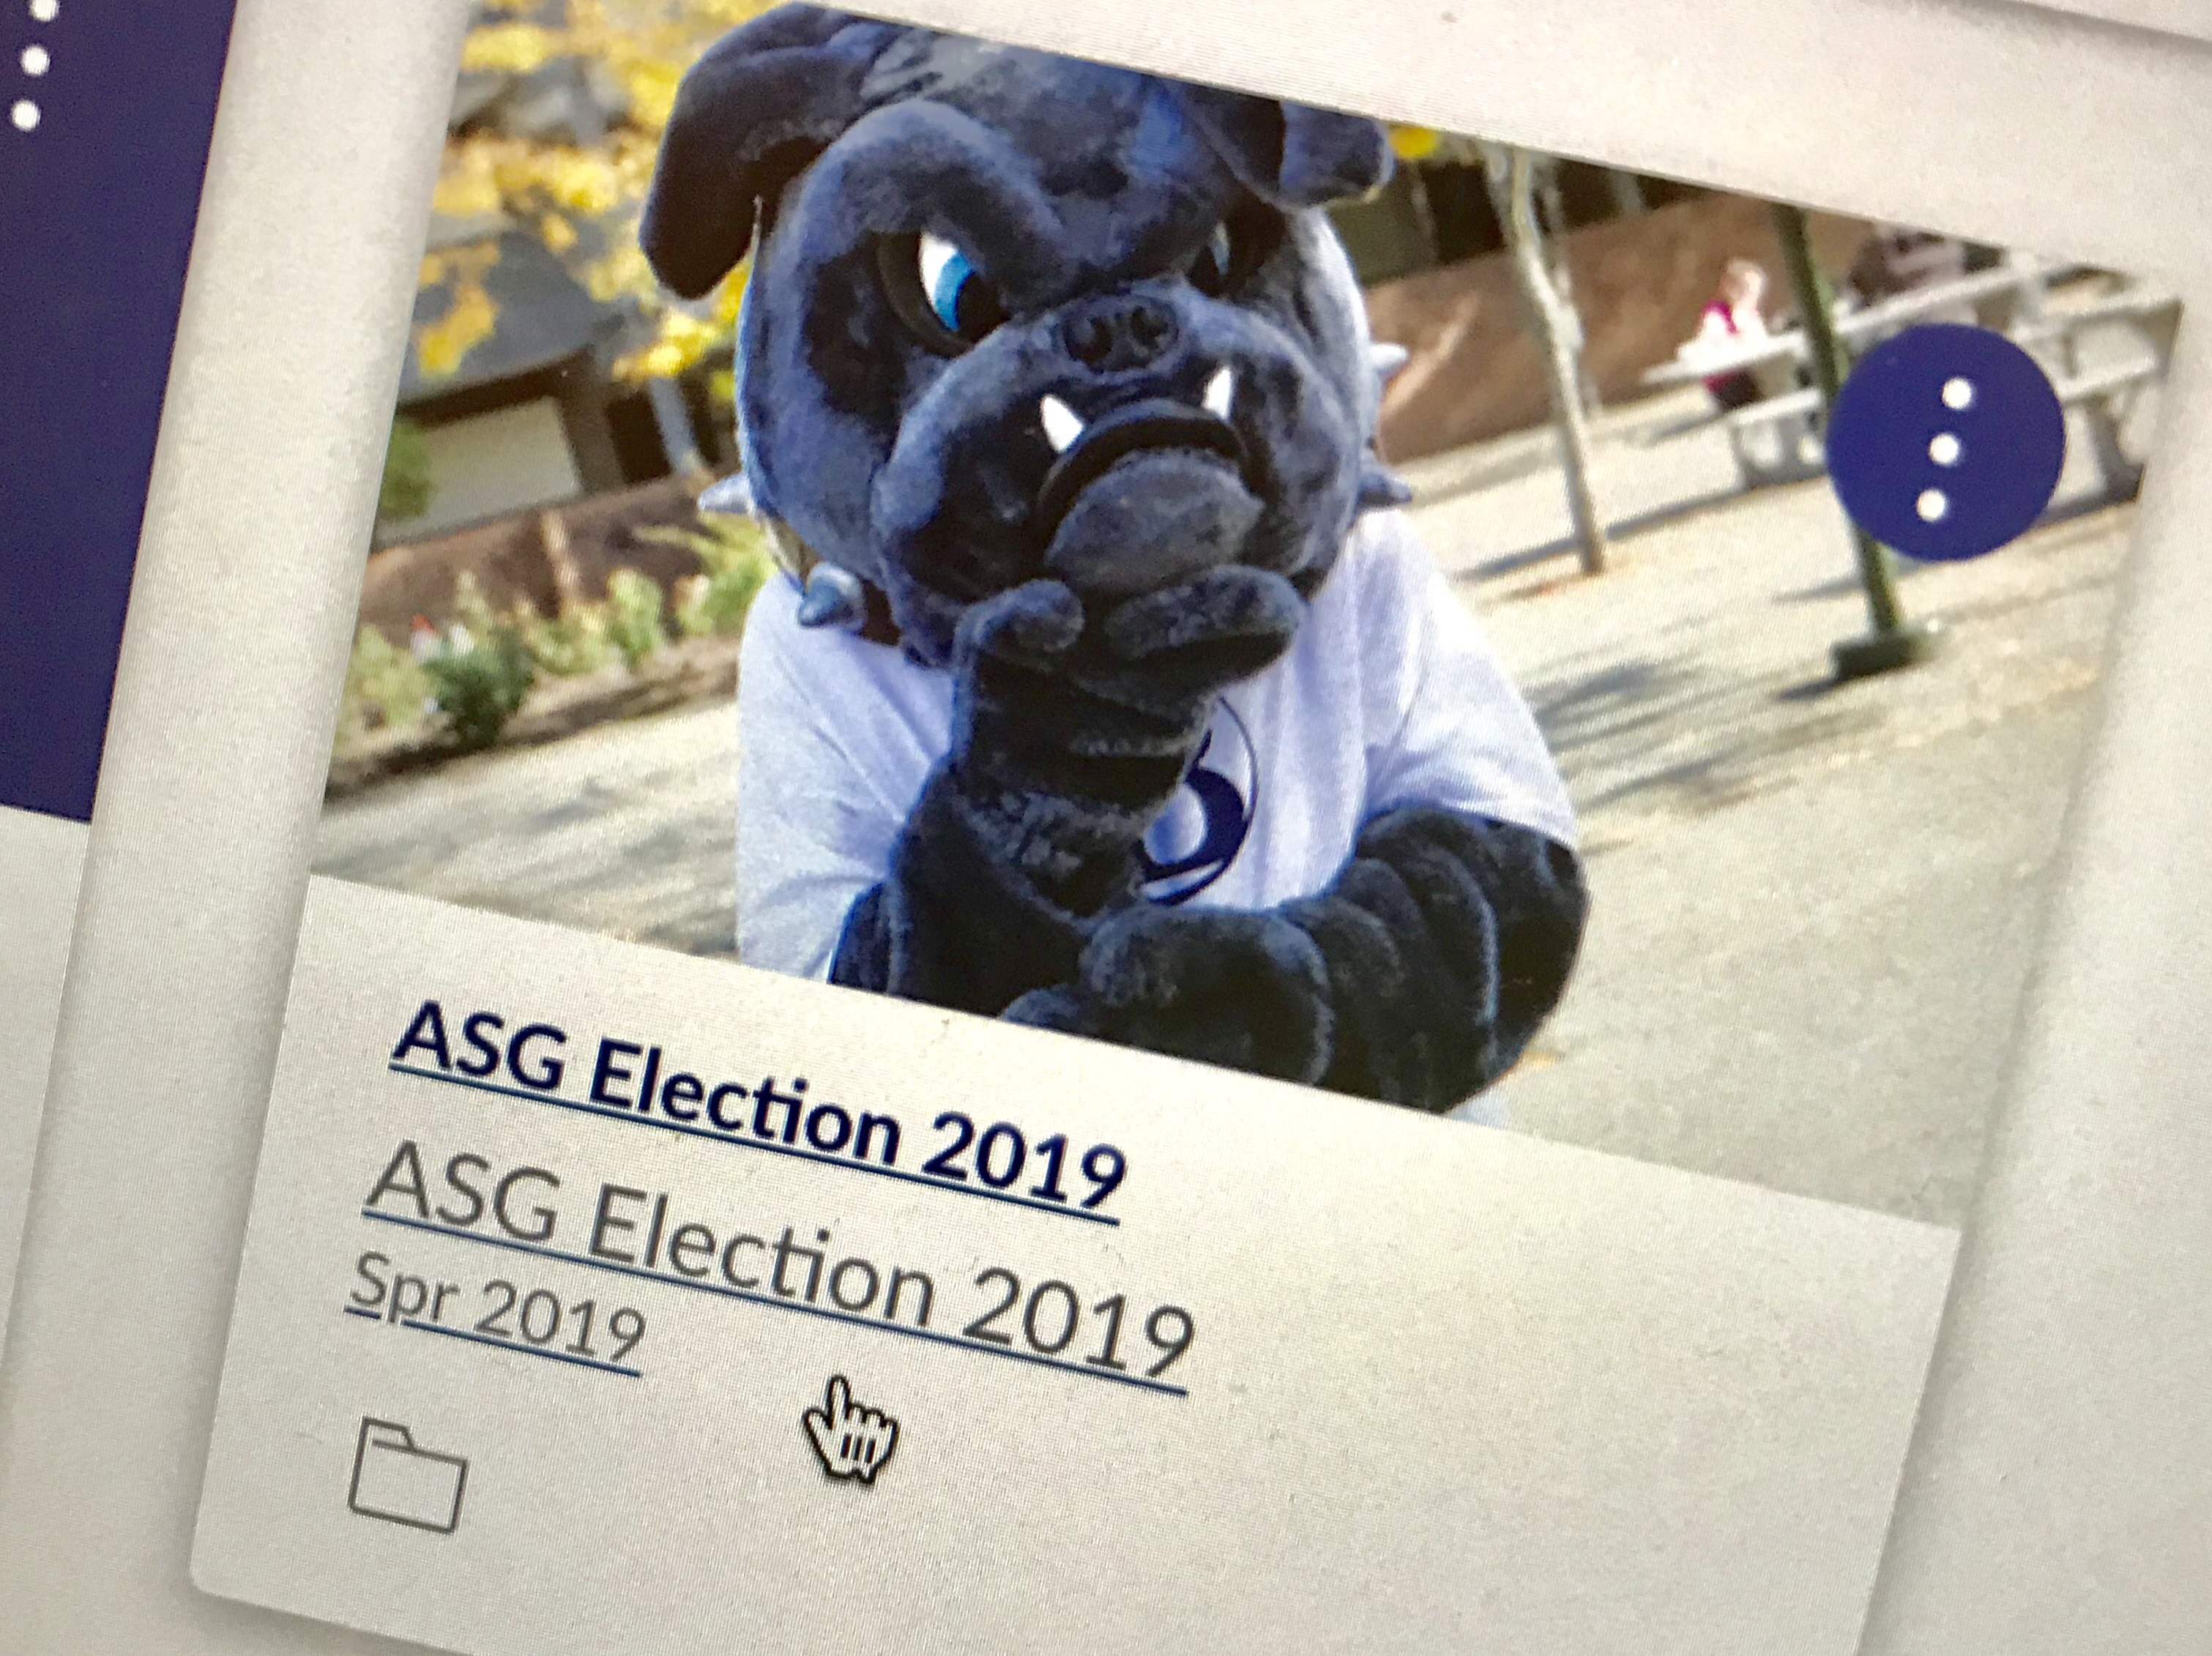 ASG Election